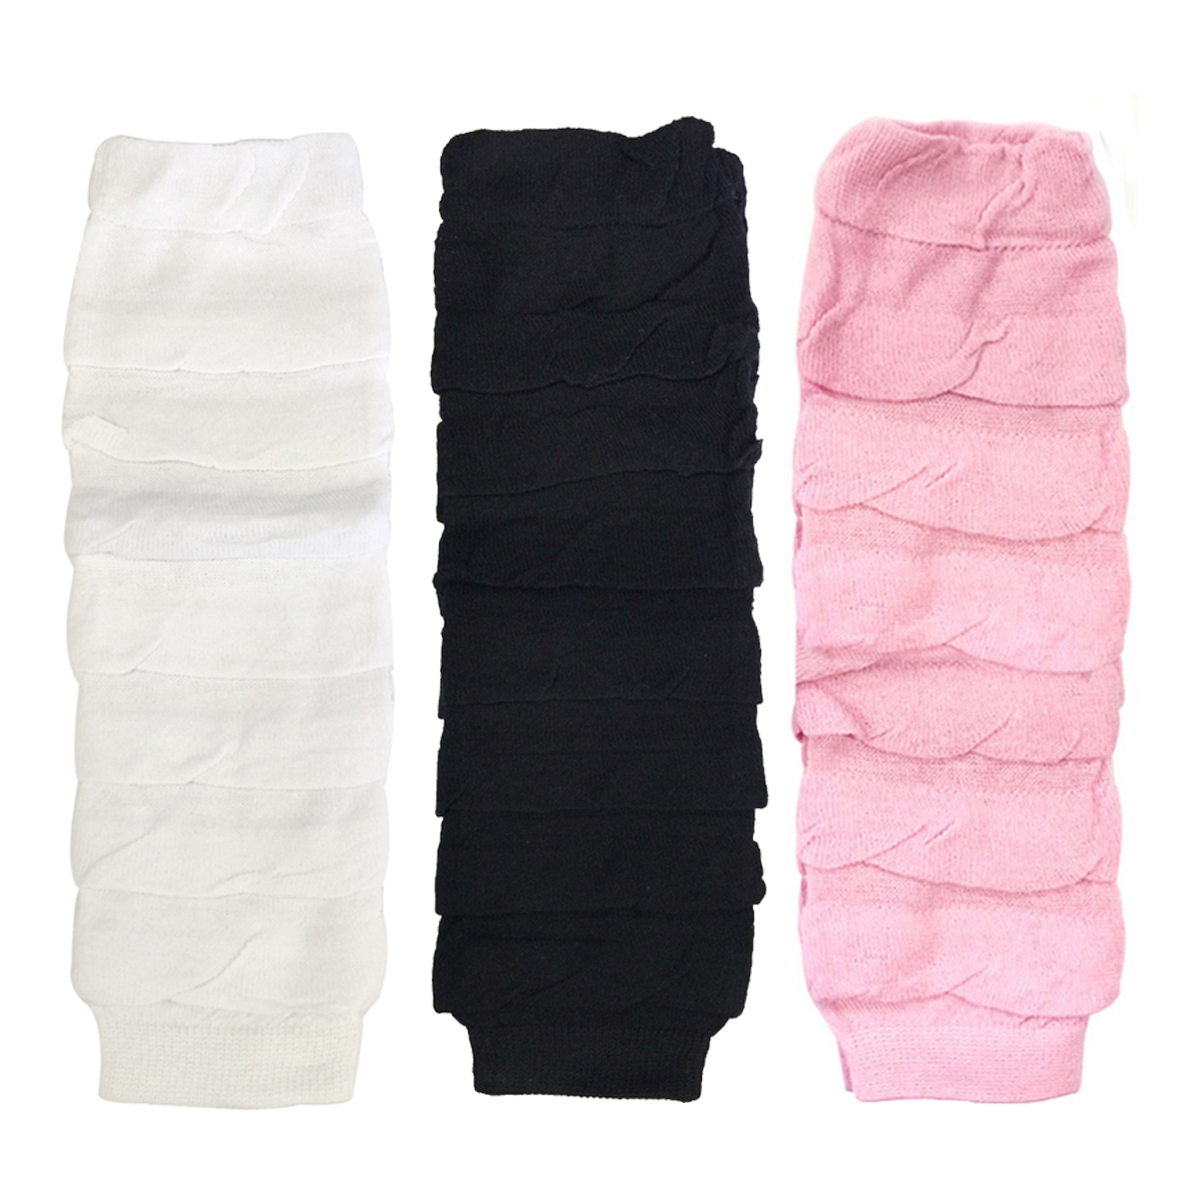 Wrapables®  Little Girls 3 Pair Layered Ruffles Leg Warmers, White, Black, Pink